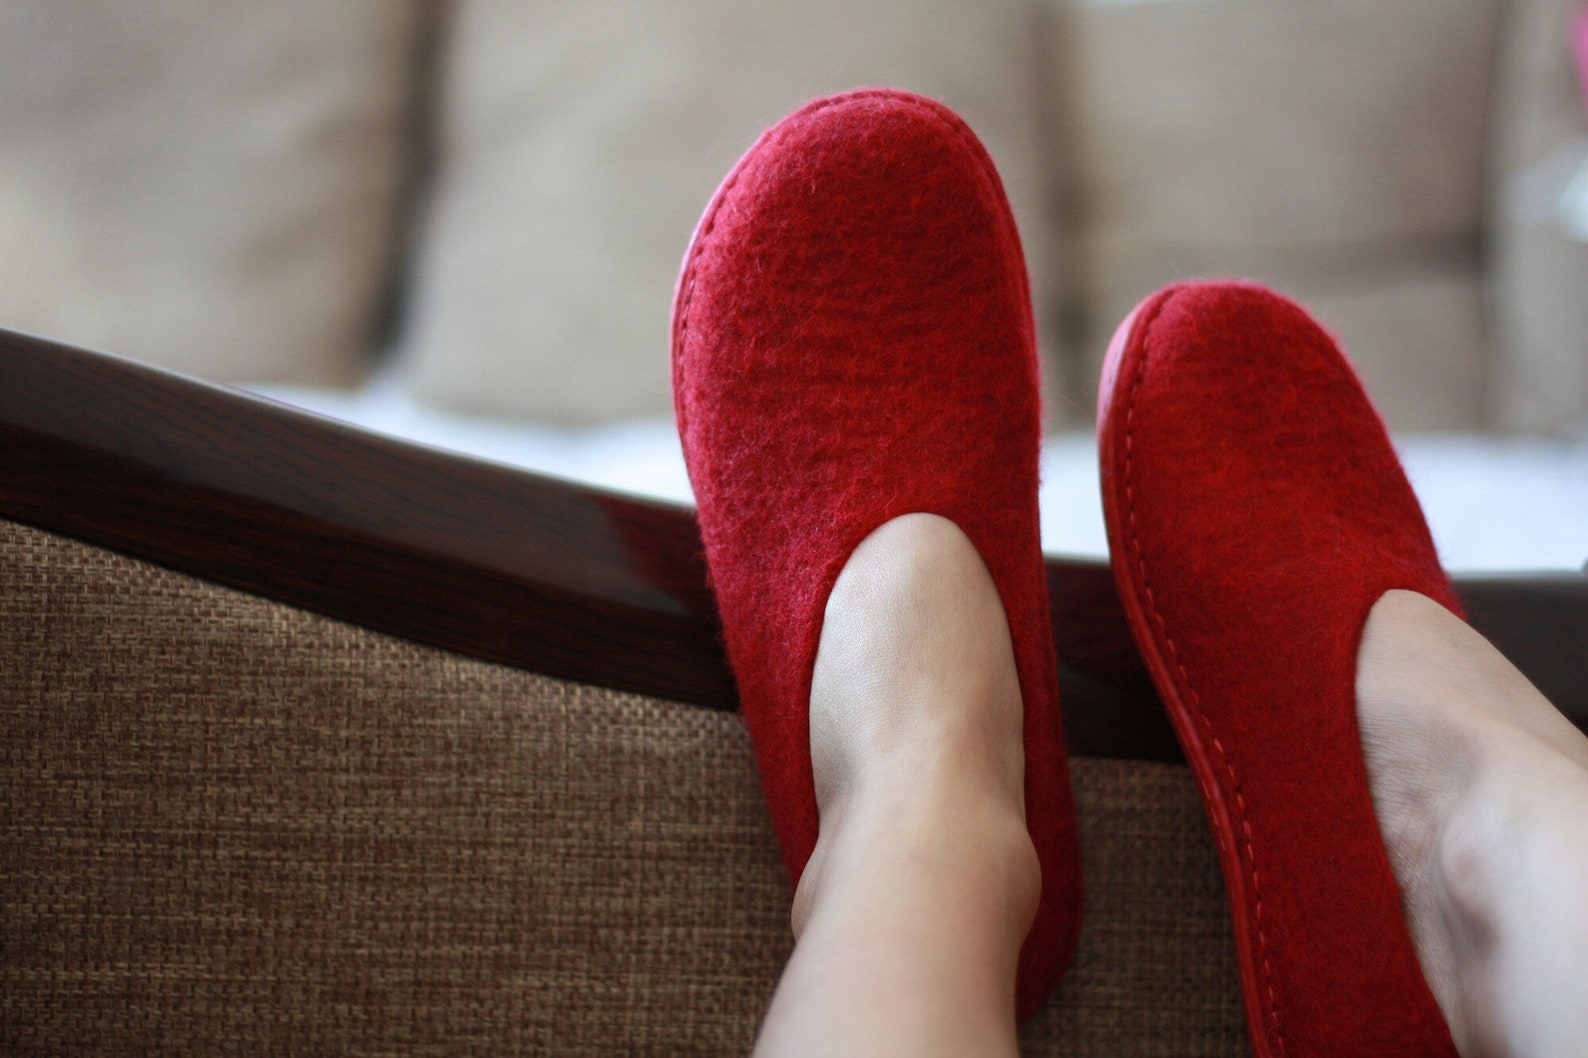 lucielalune / spring ballet shoes/eu38.5 us8 uk5.5/ vin red / women slip on/ handmade loafers.